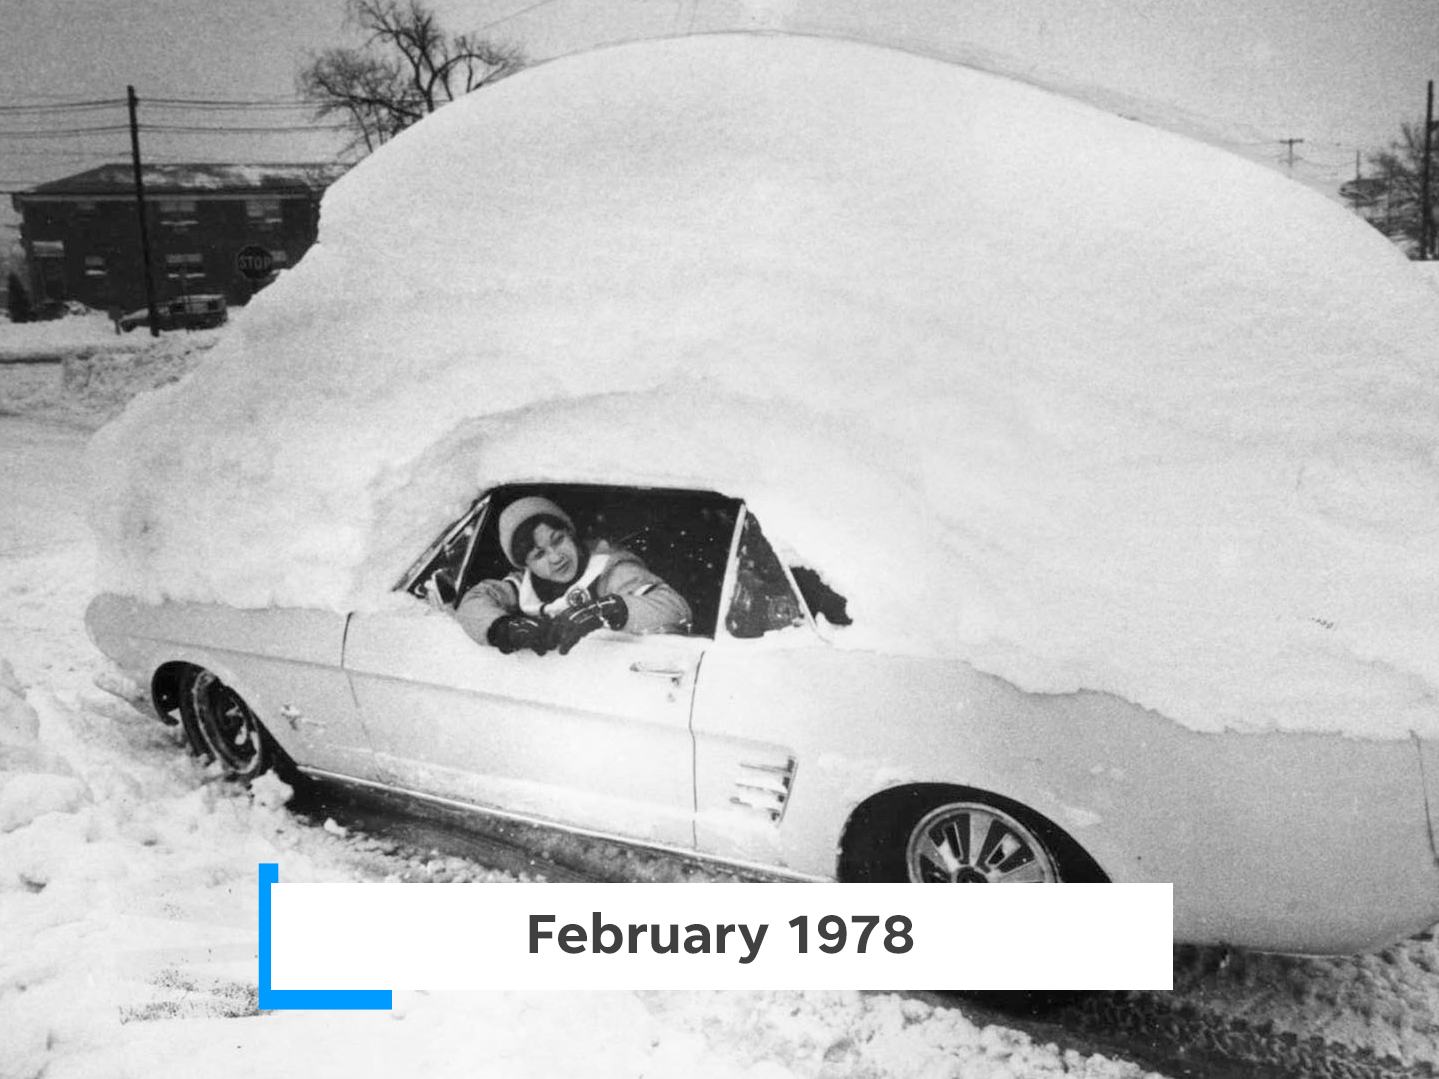 The Blizzard of '78, which affected much of the northeast, blanketed New Jersey with 20 inches of snow.